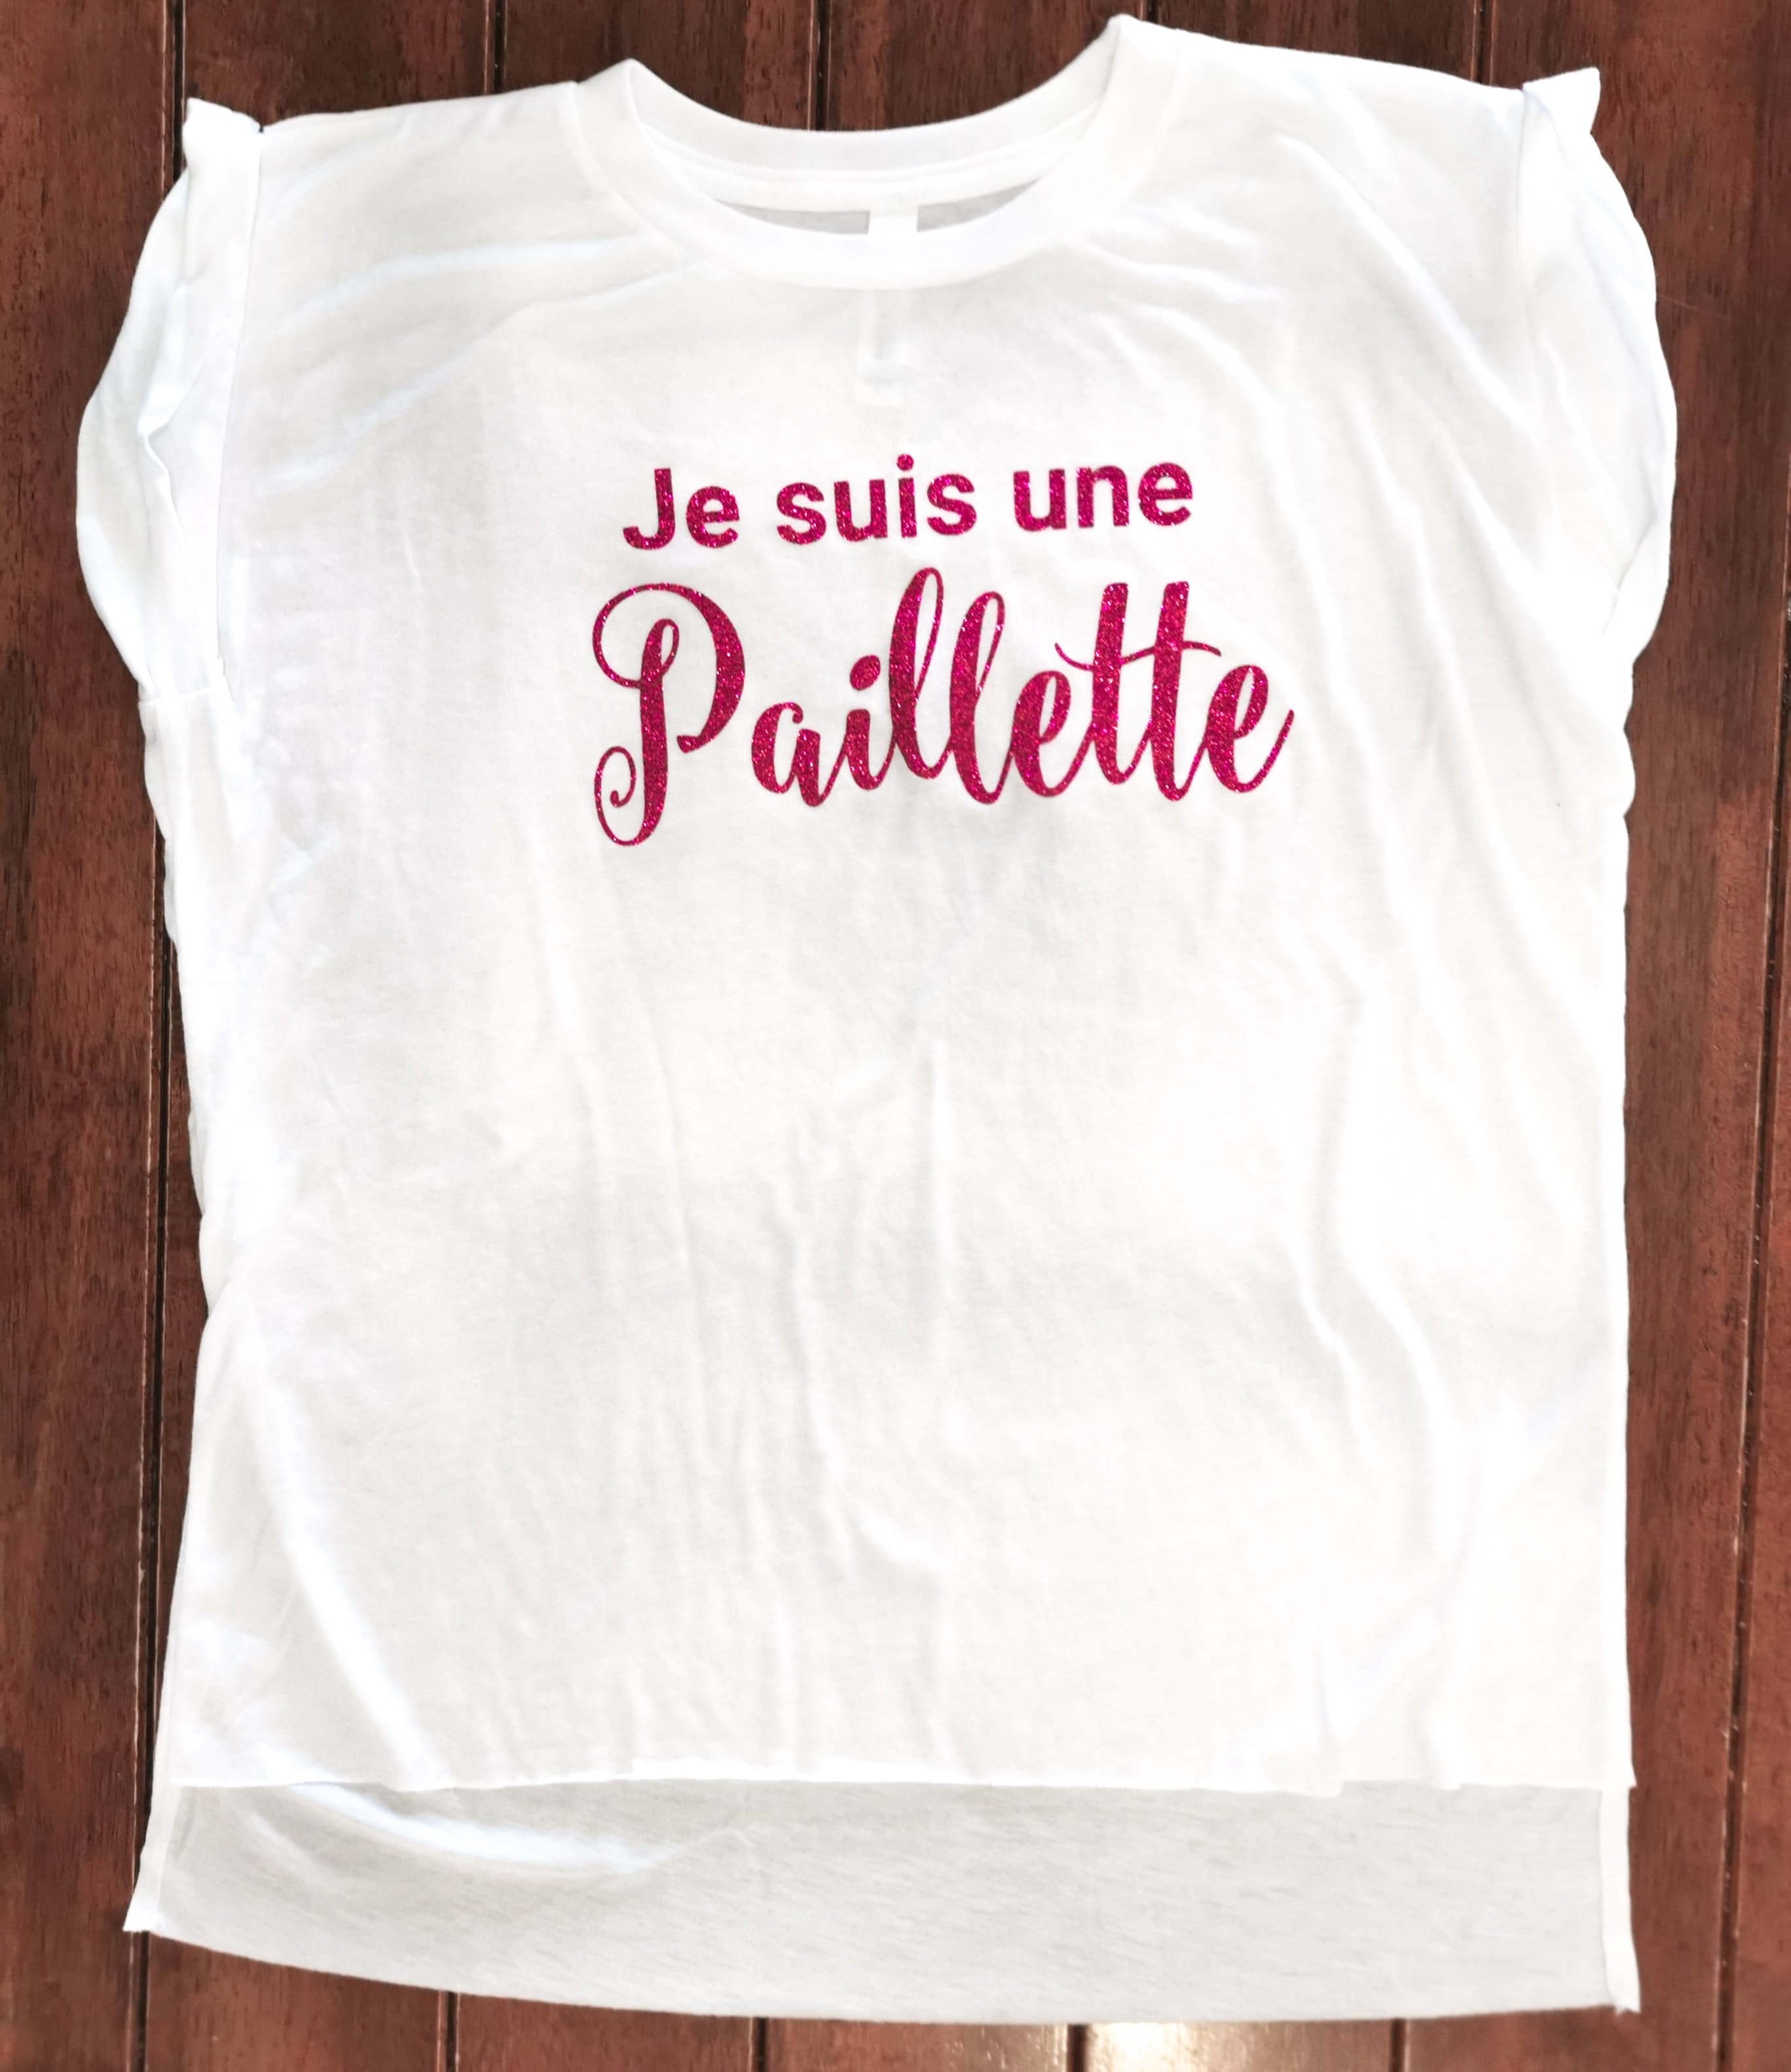 T-shirt avec citation